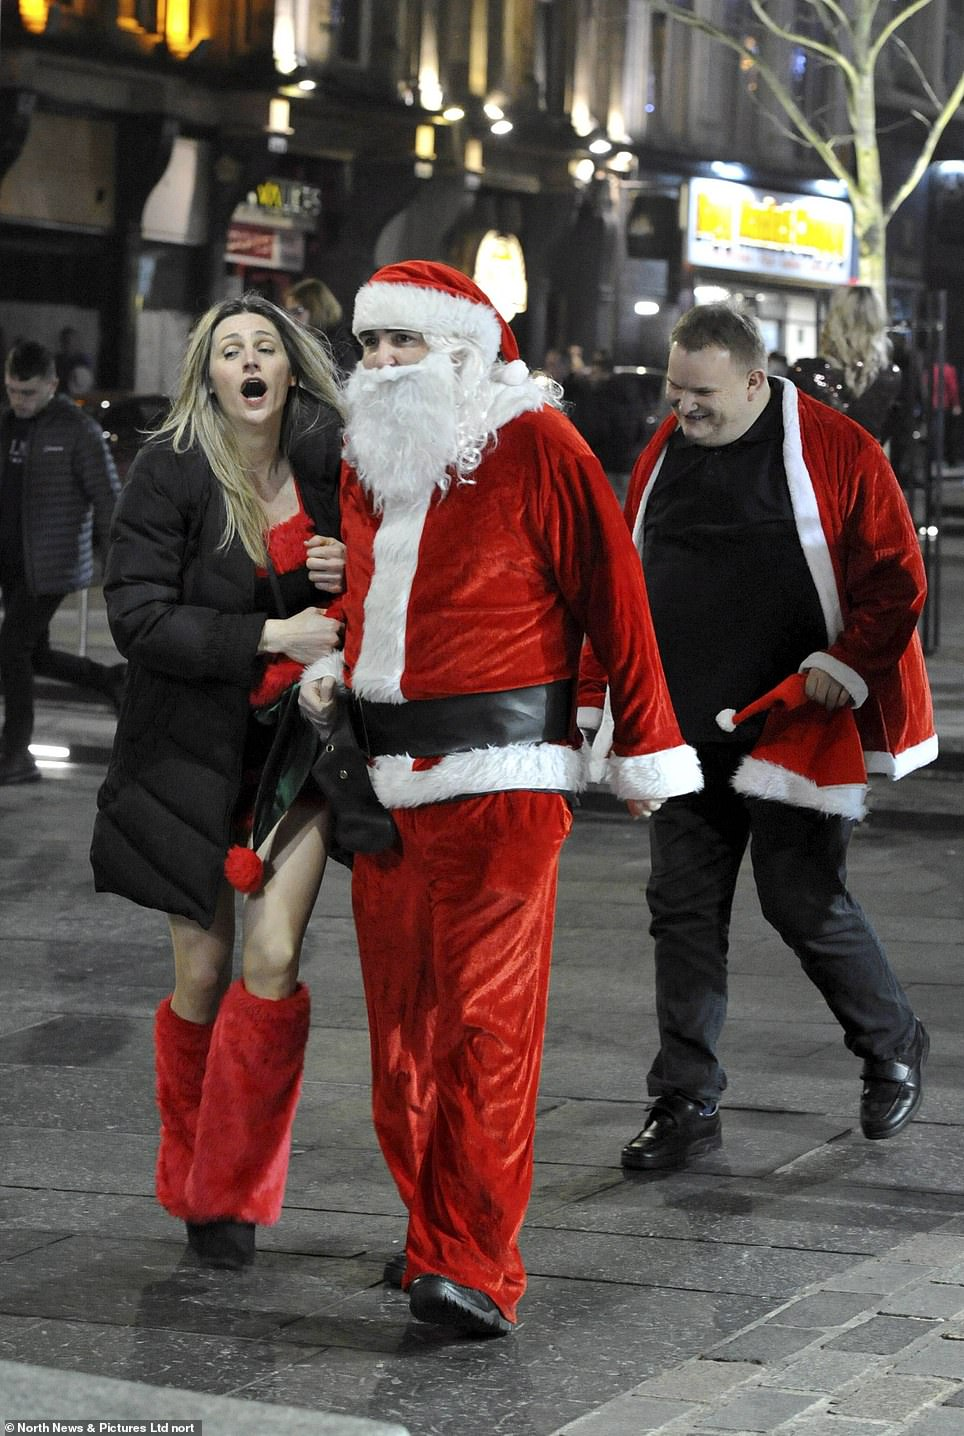 A woman clutches onto a man dressed as Santa as they walk the streets ofNewcastle in 2019